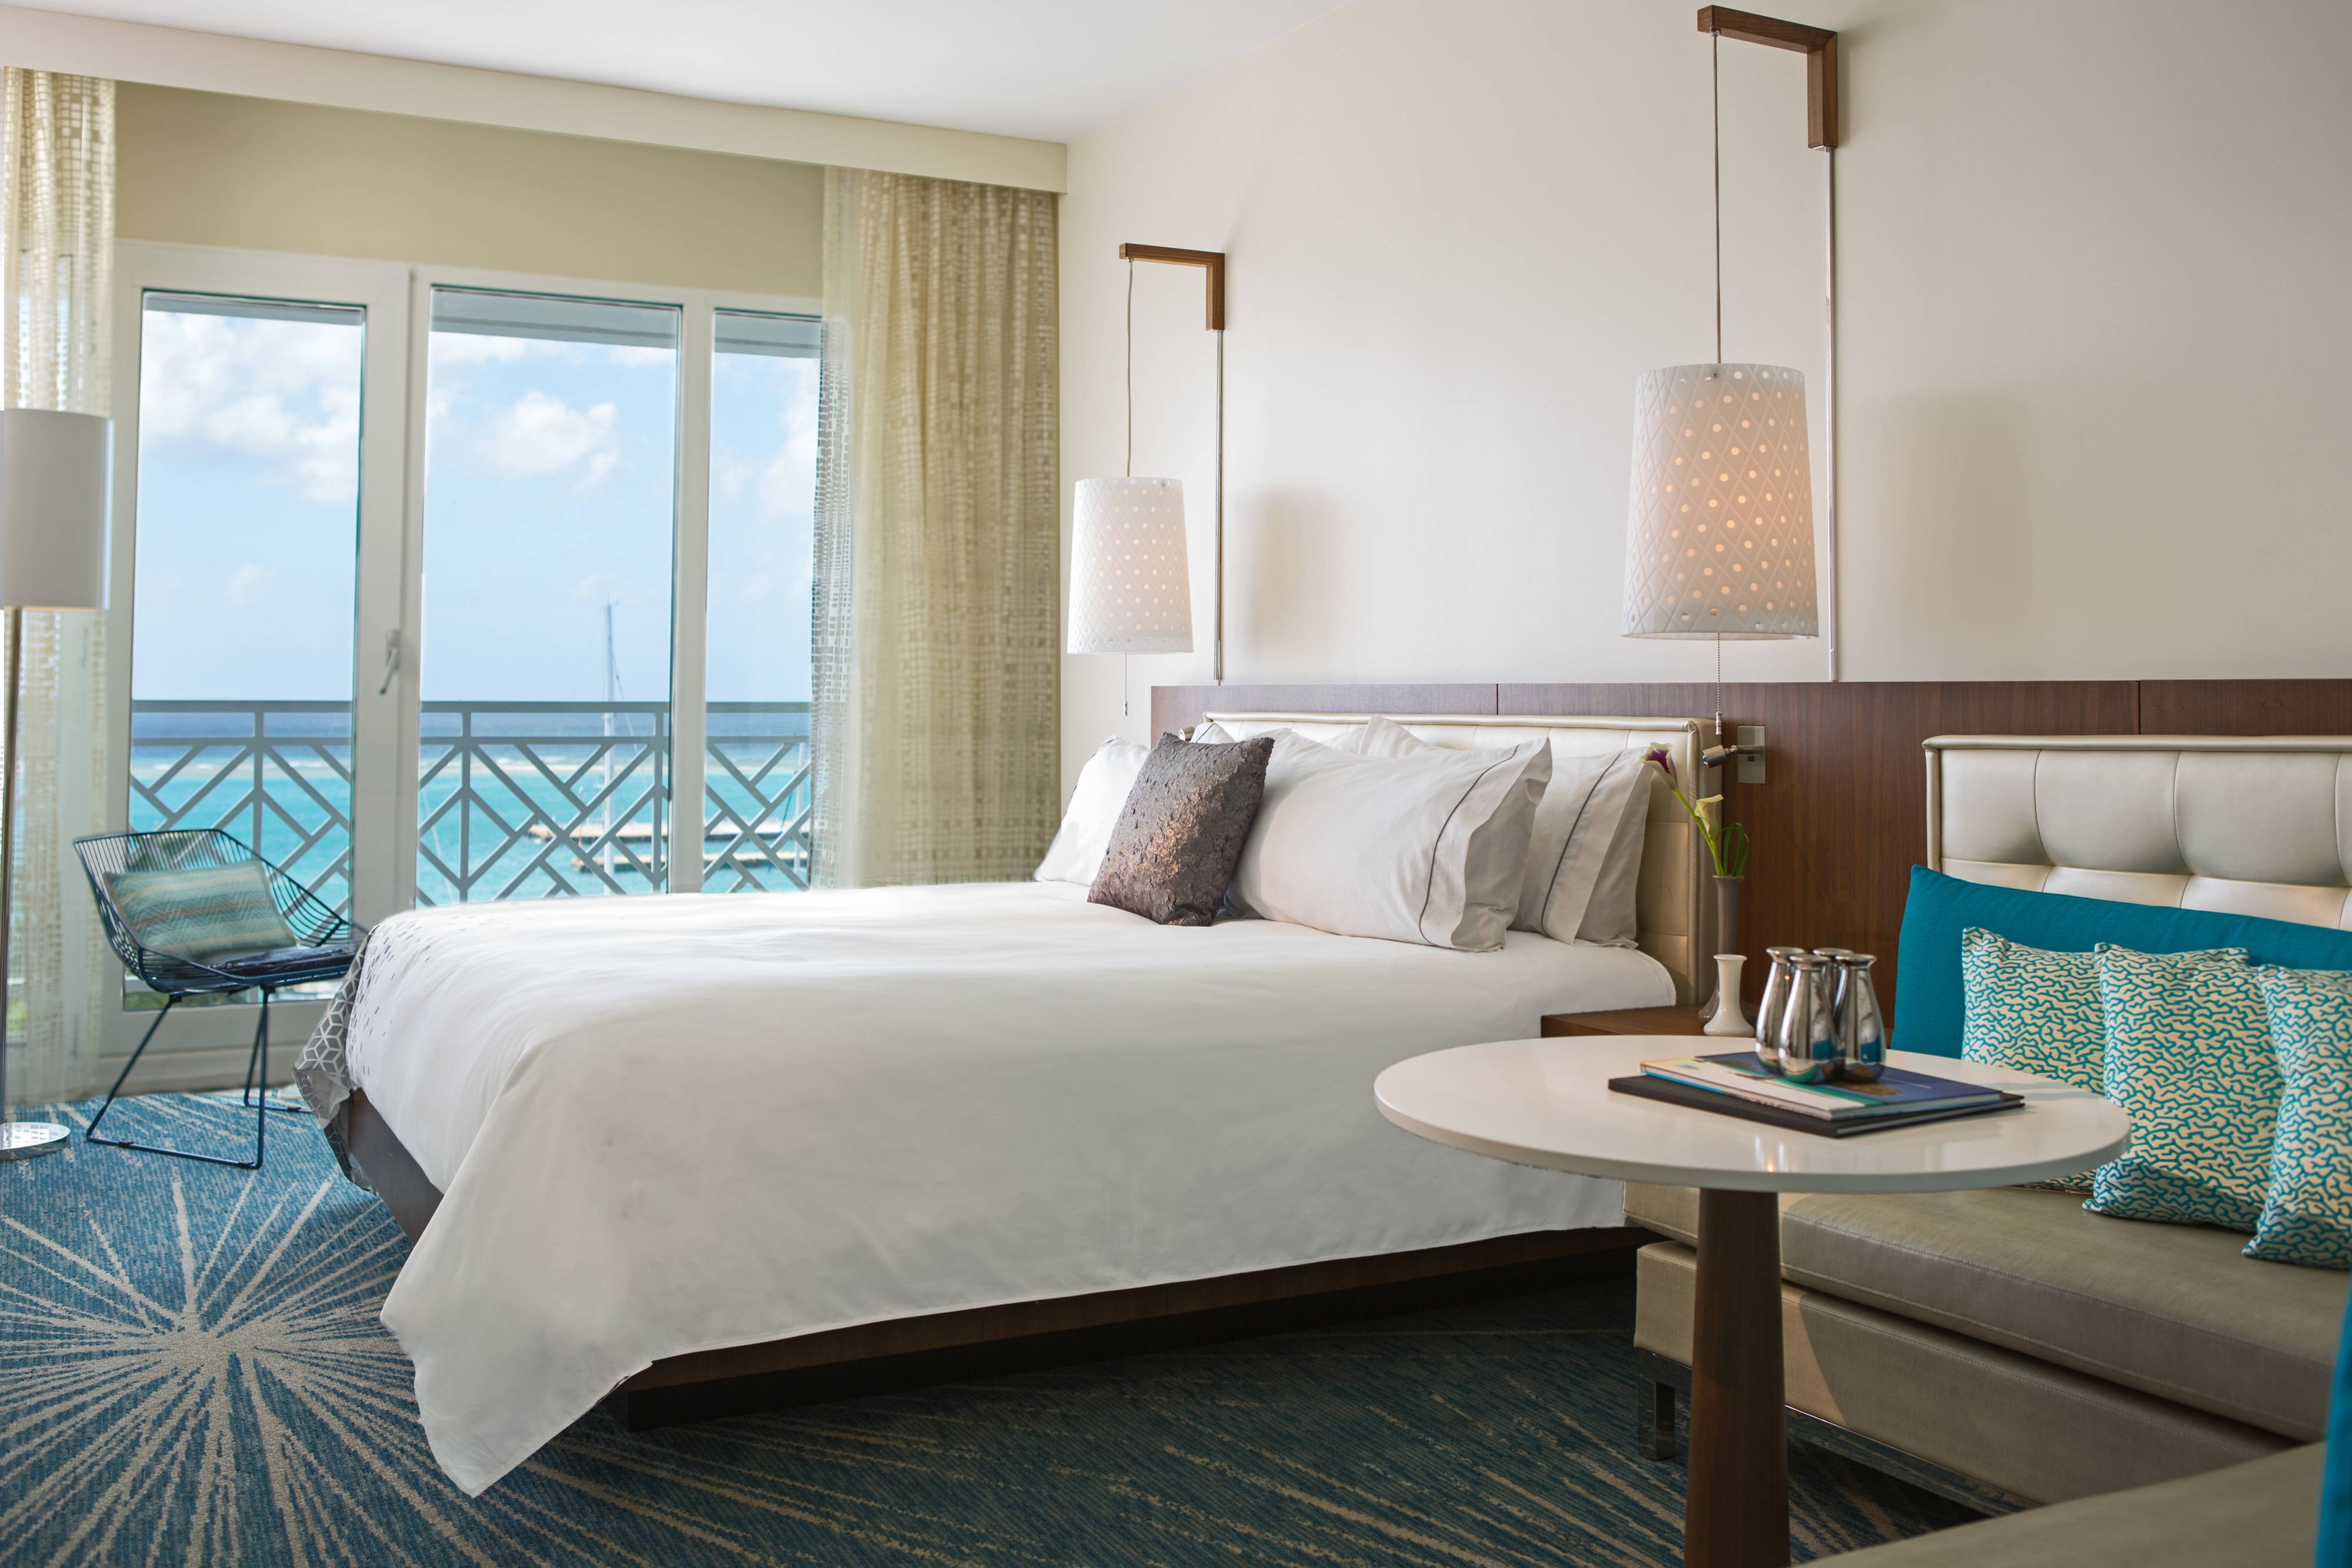 Adult-Only Hotel Rooms And Suites In Aruba